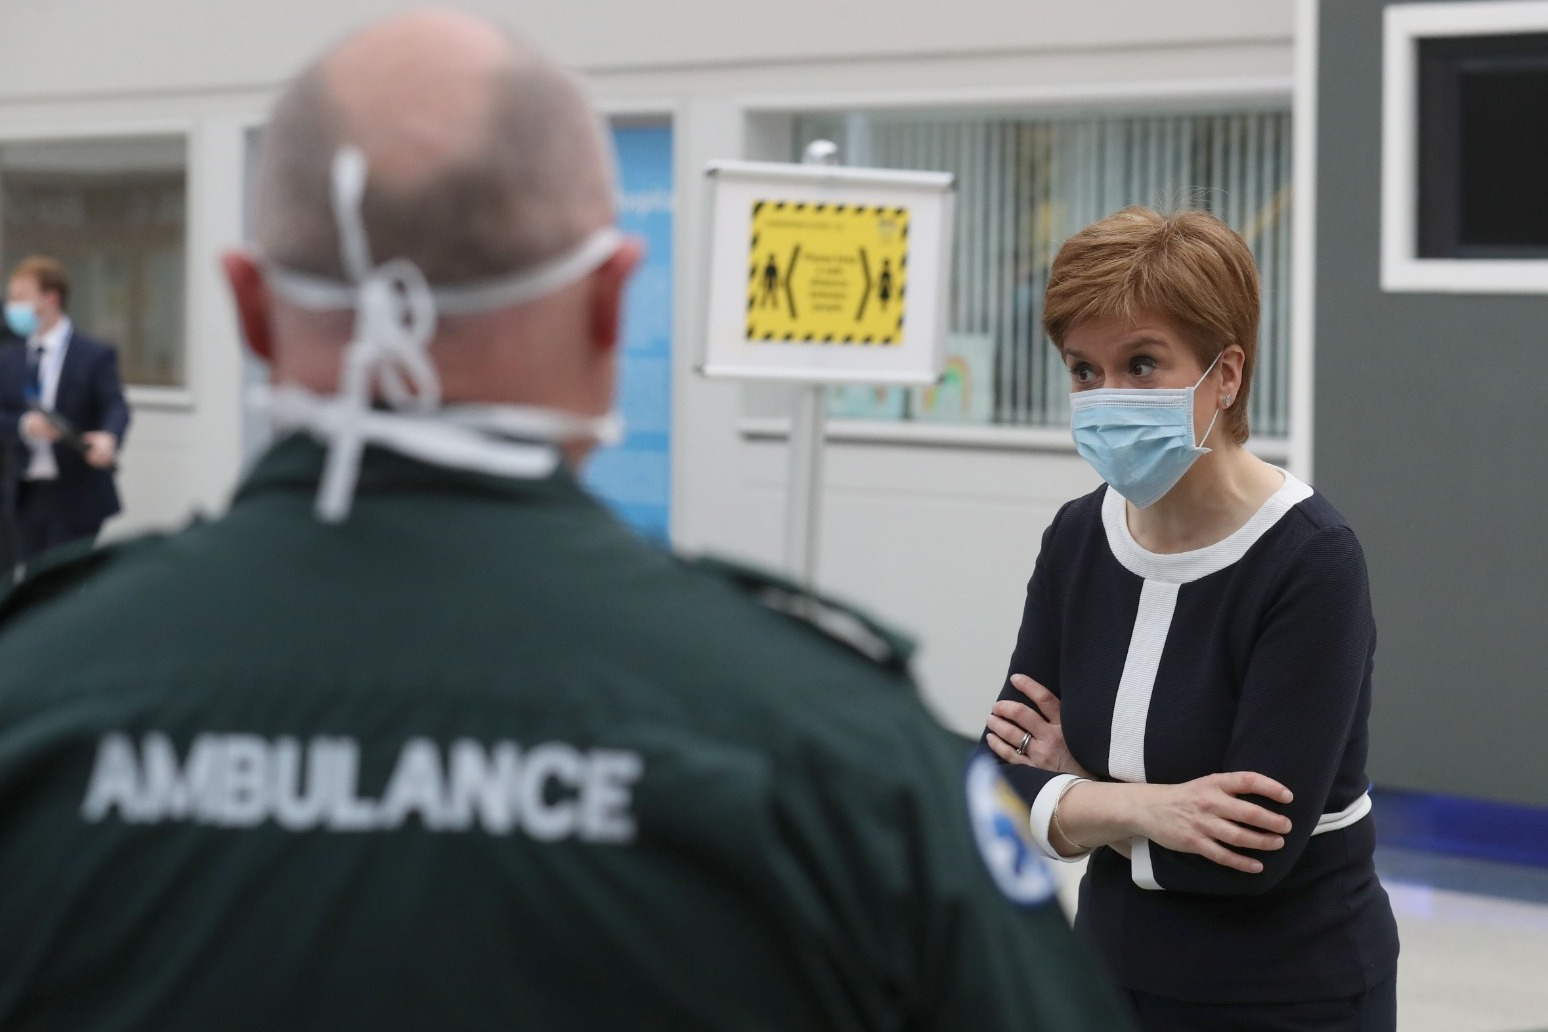 Scottish Government urged to bring in paramedic bursaries